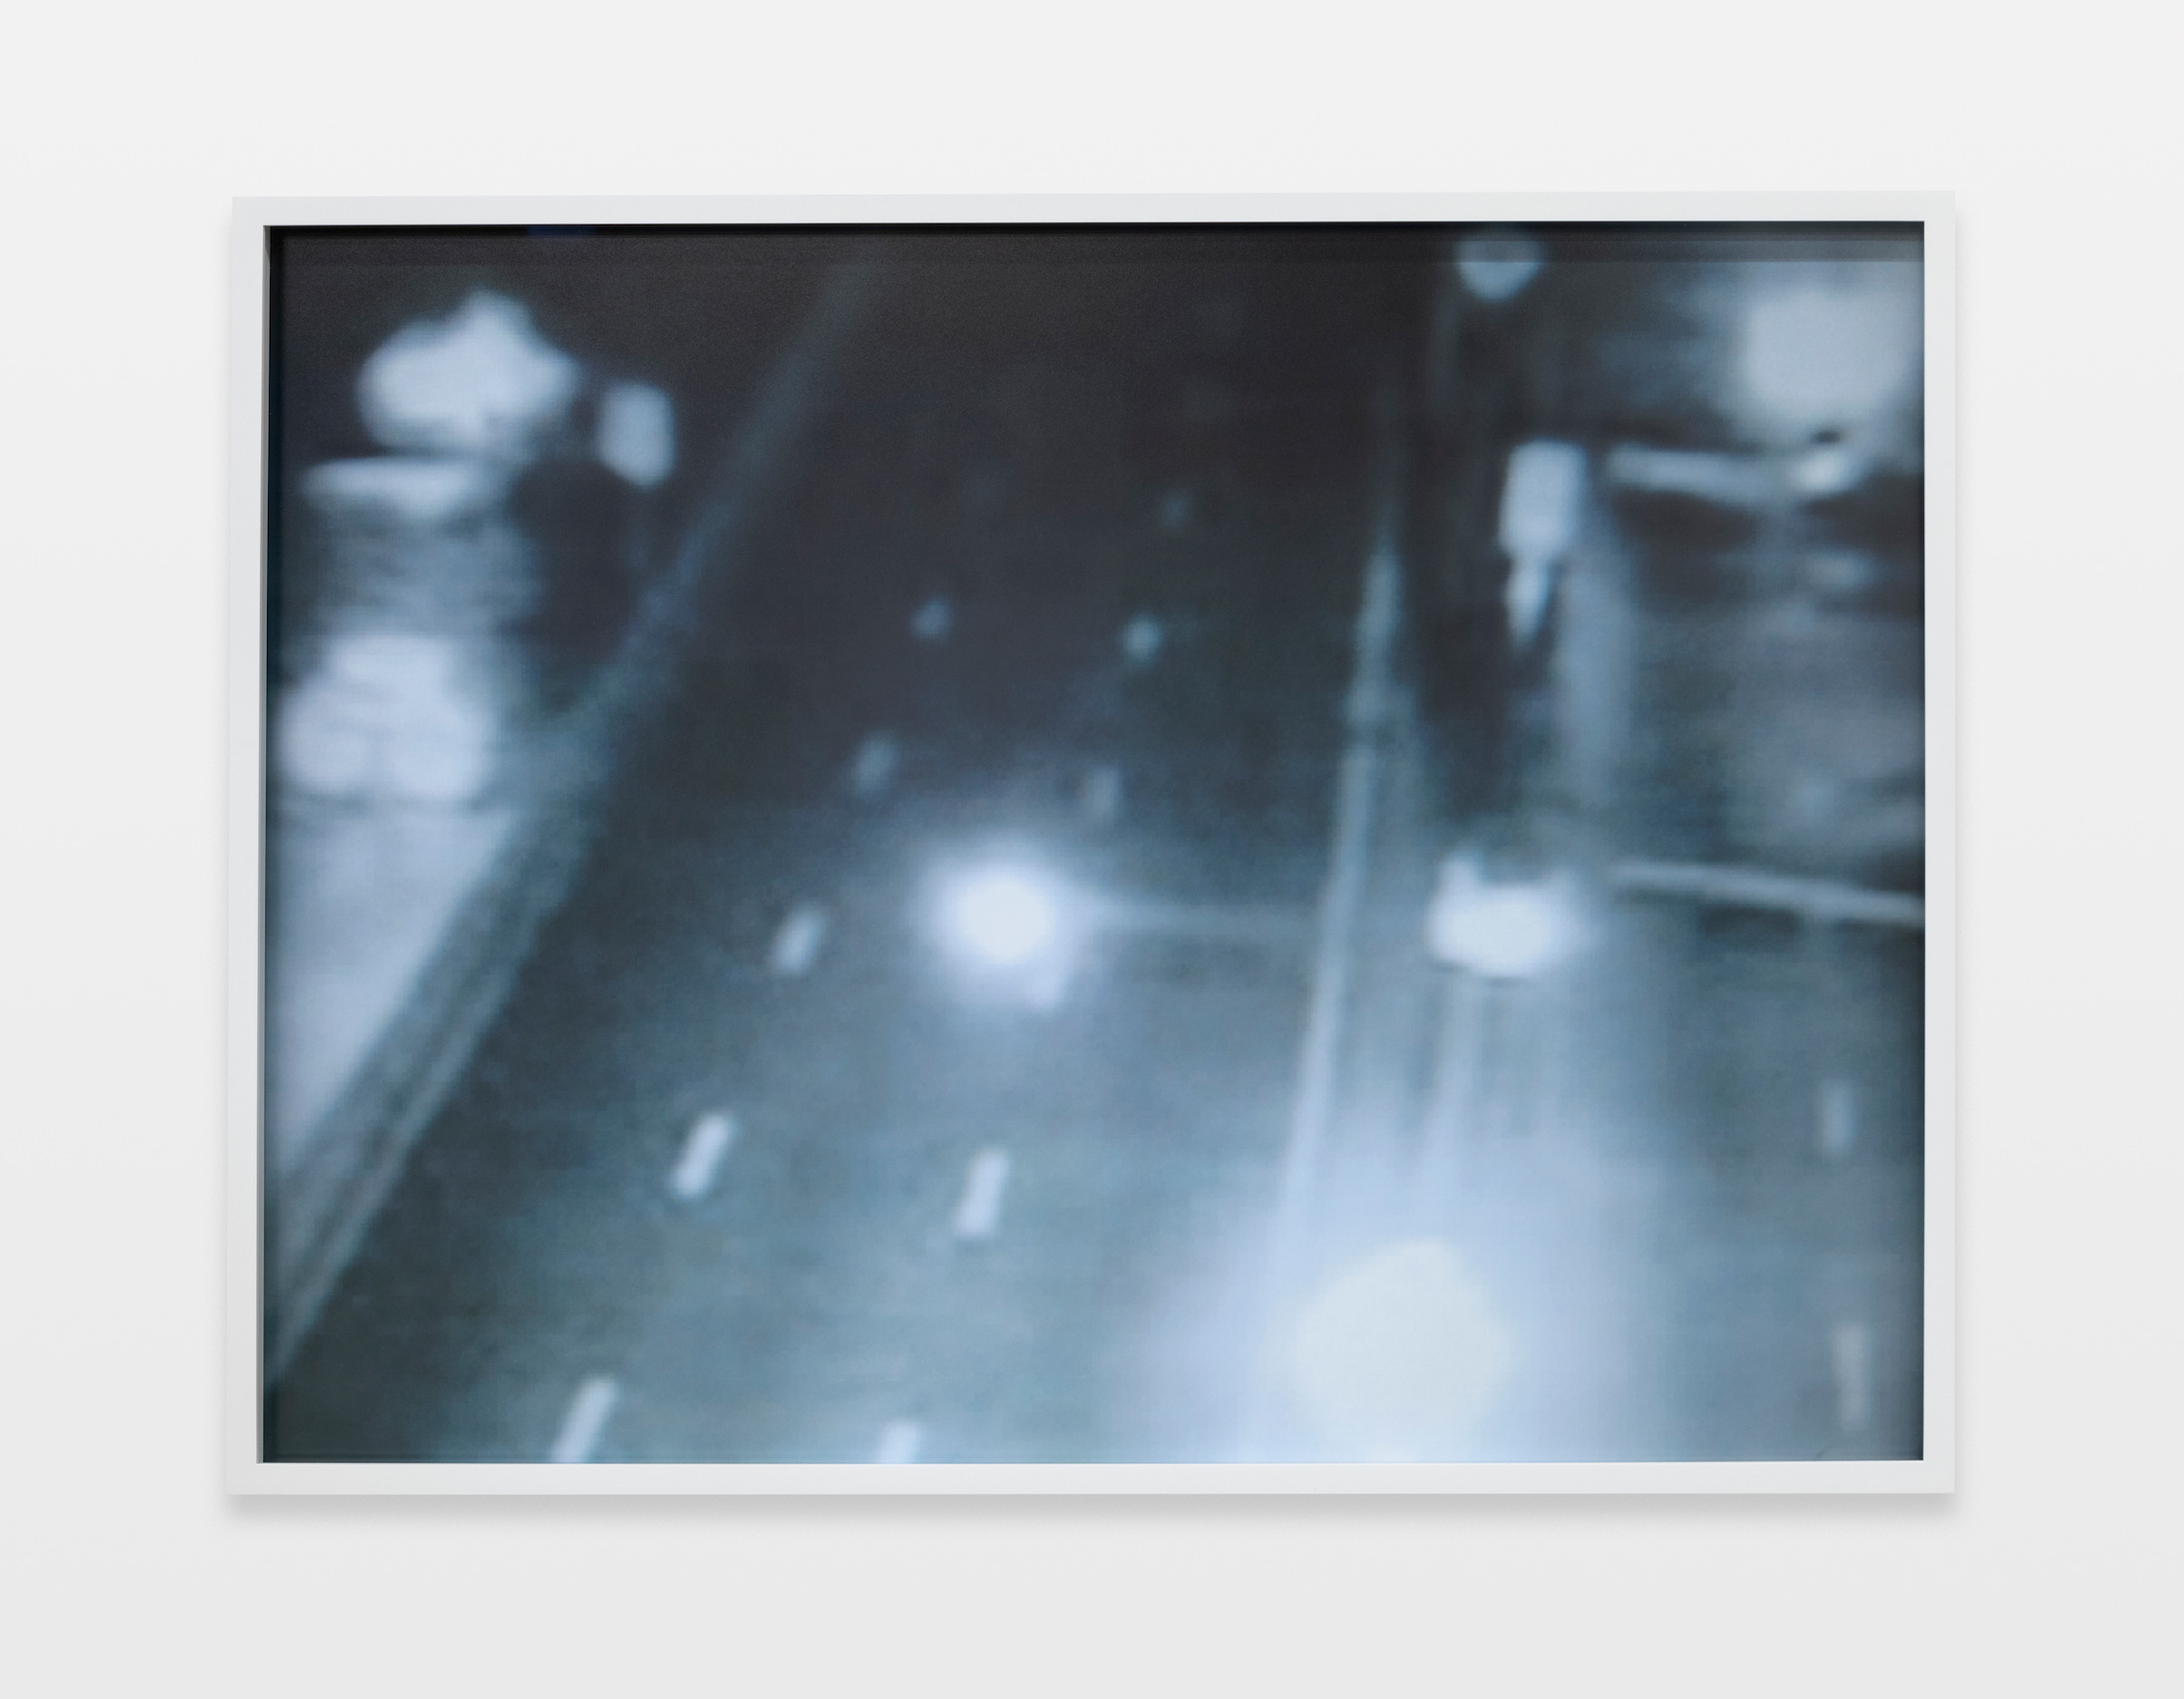 Barbara Ess, Traffic [Remote Series], 2011, archival pigment print, 24h x 31.94w in.